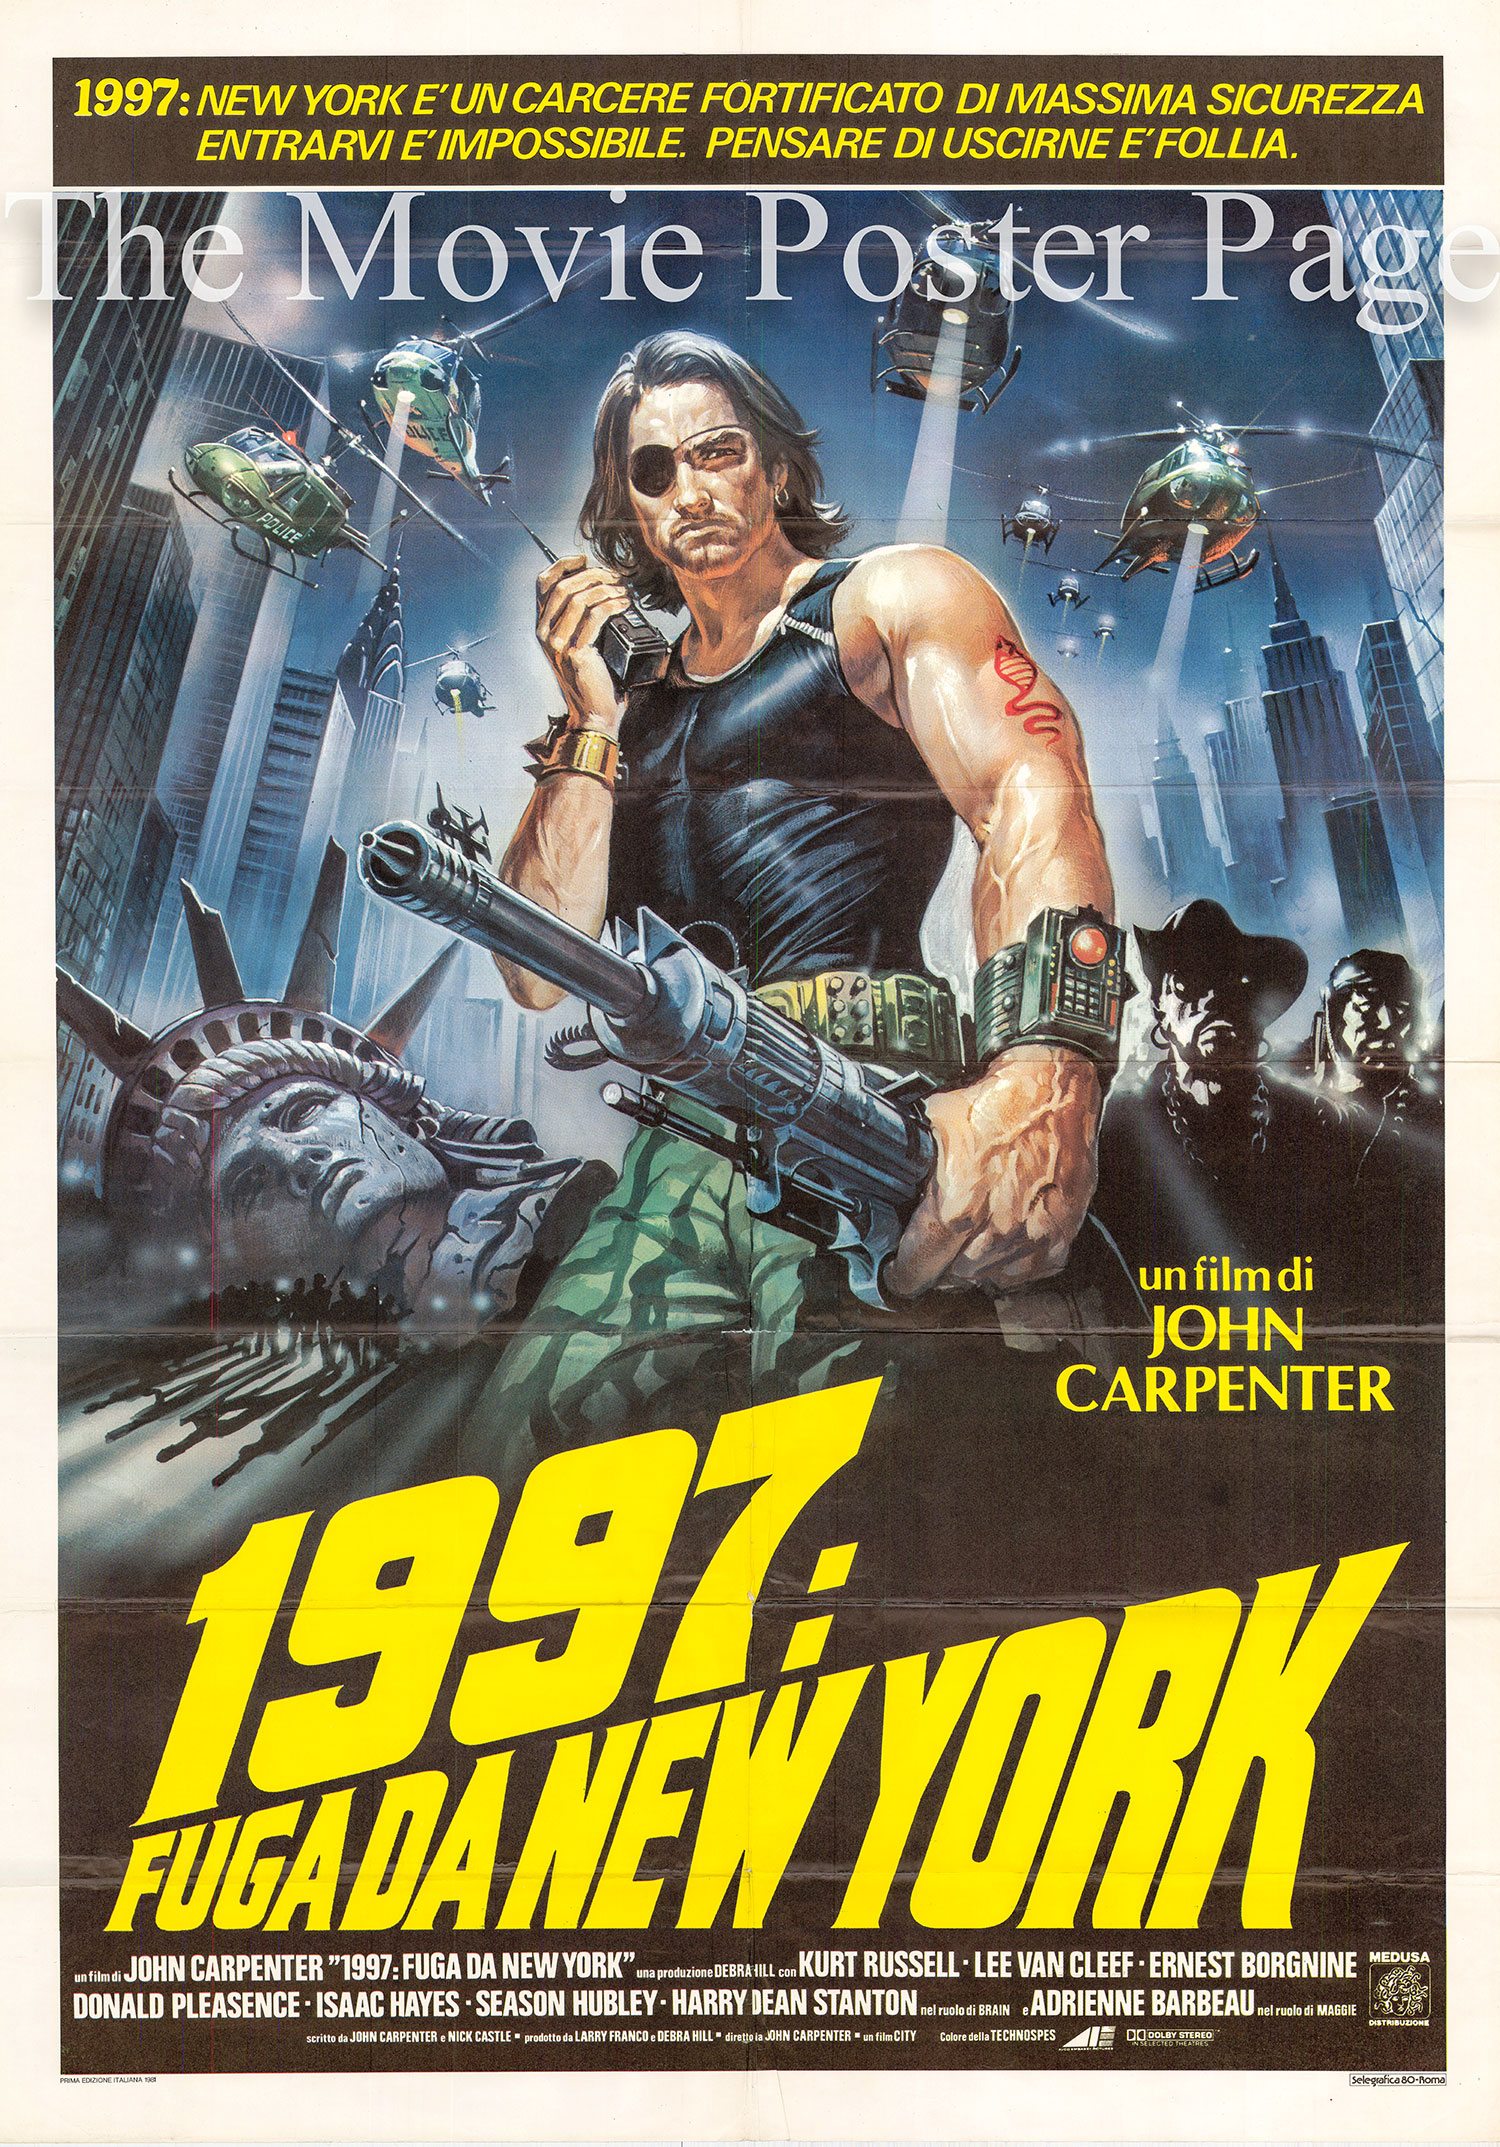 Pictured is an Italian two-sheet promotional poster for the 1981 John Carpenter film Escape from New York starring Kut Russell.